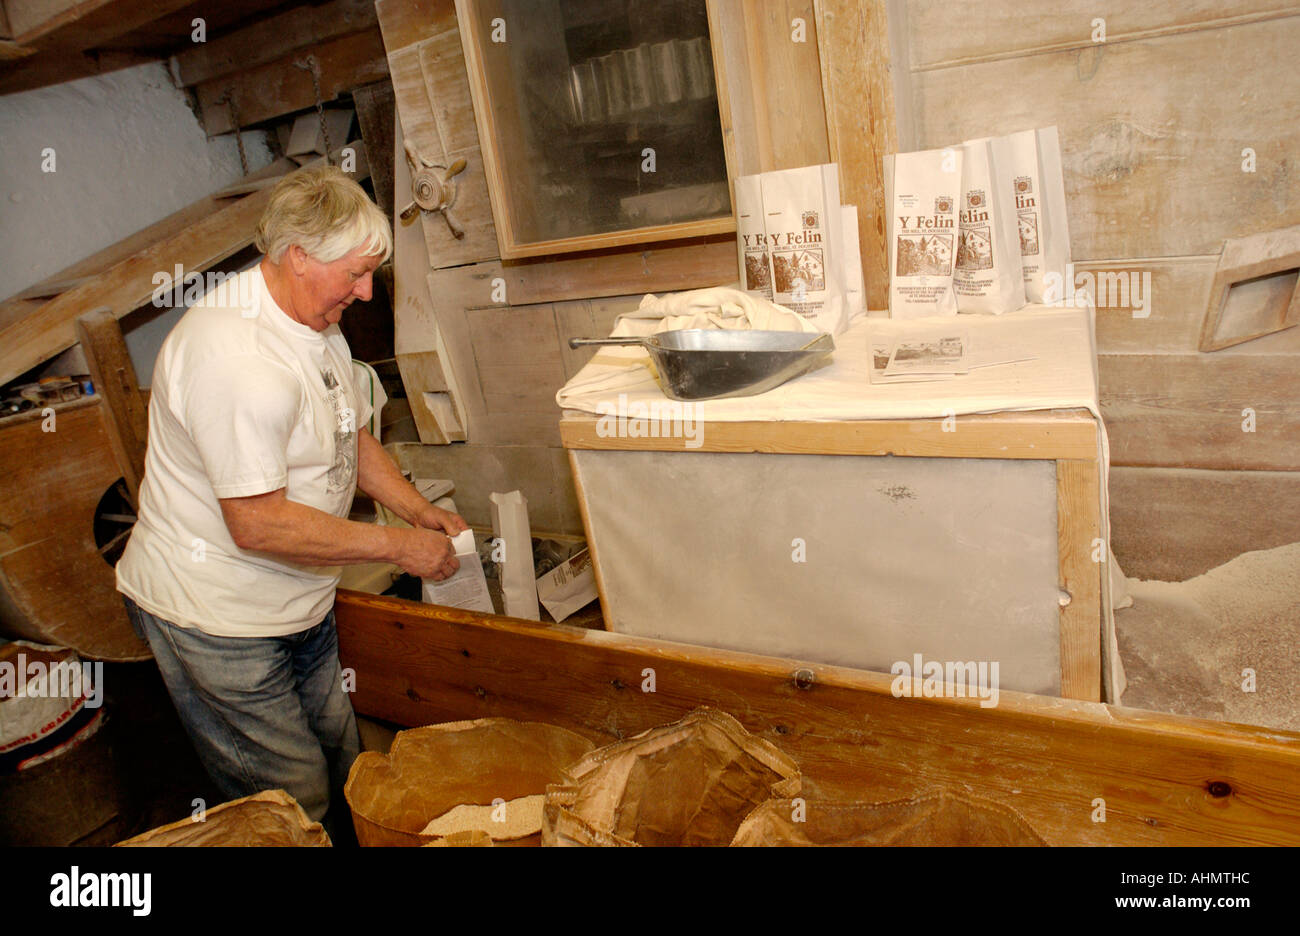 Miller working in small bag weighing area in 17th century Y Felin flour mill at St Dogmaels Pembrokeshire West Wales UK - Stock Image